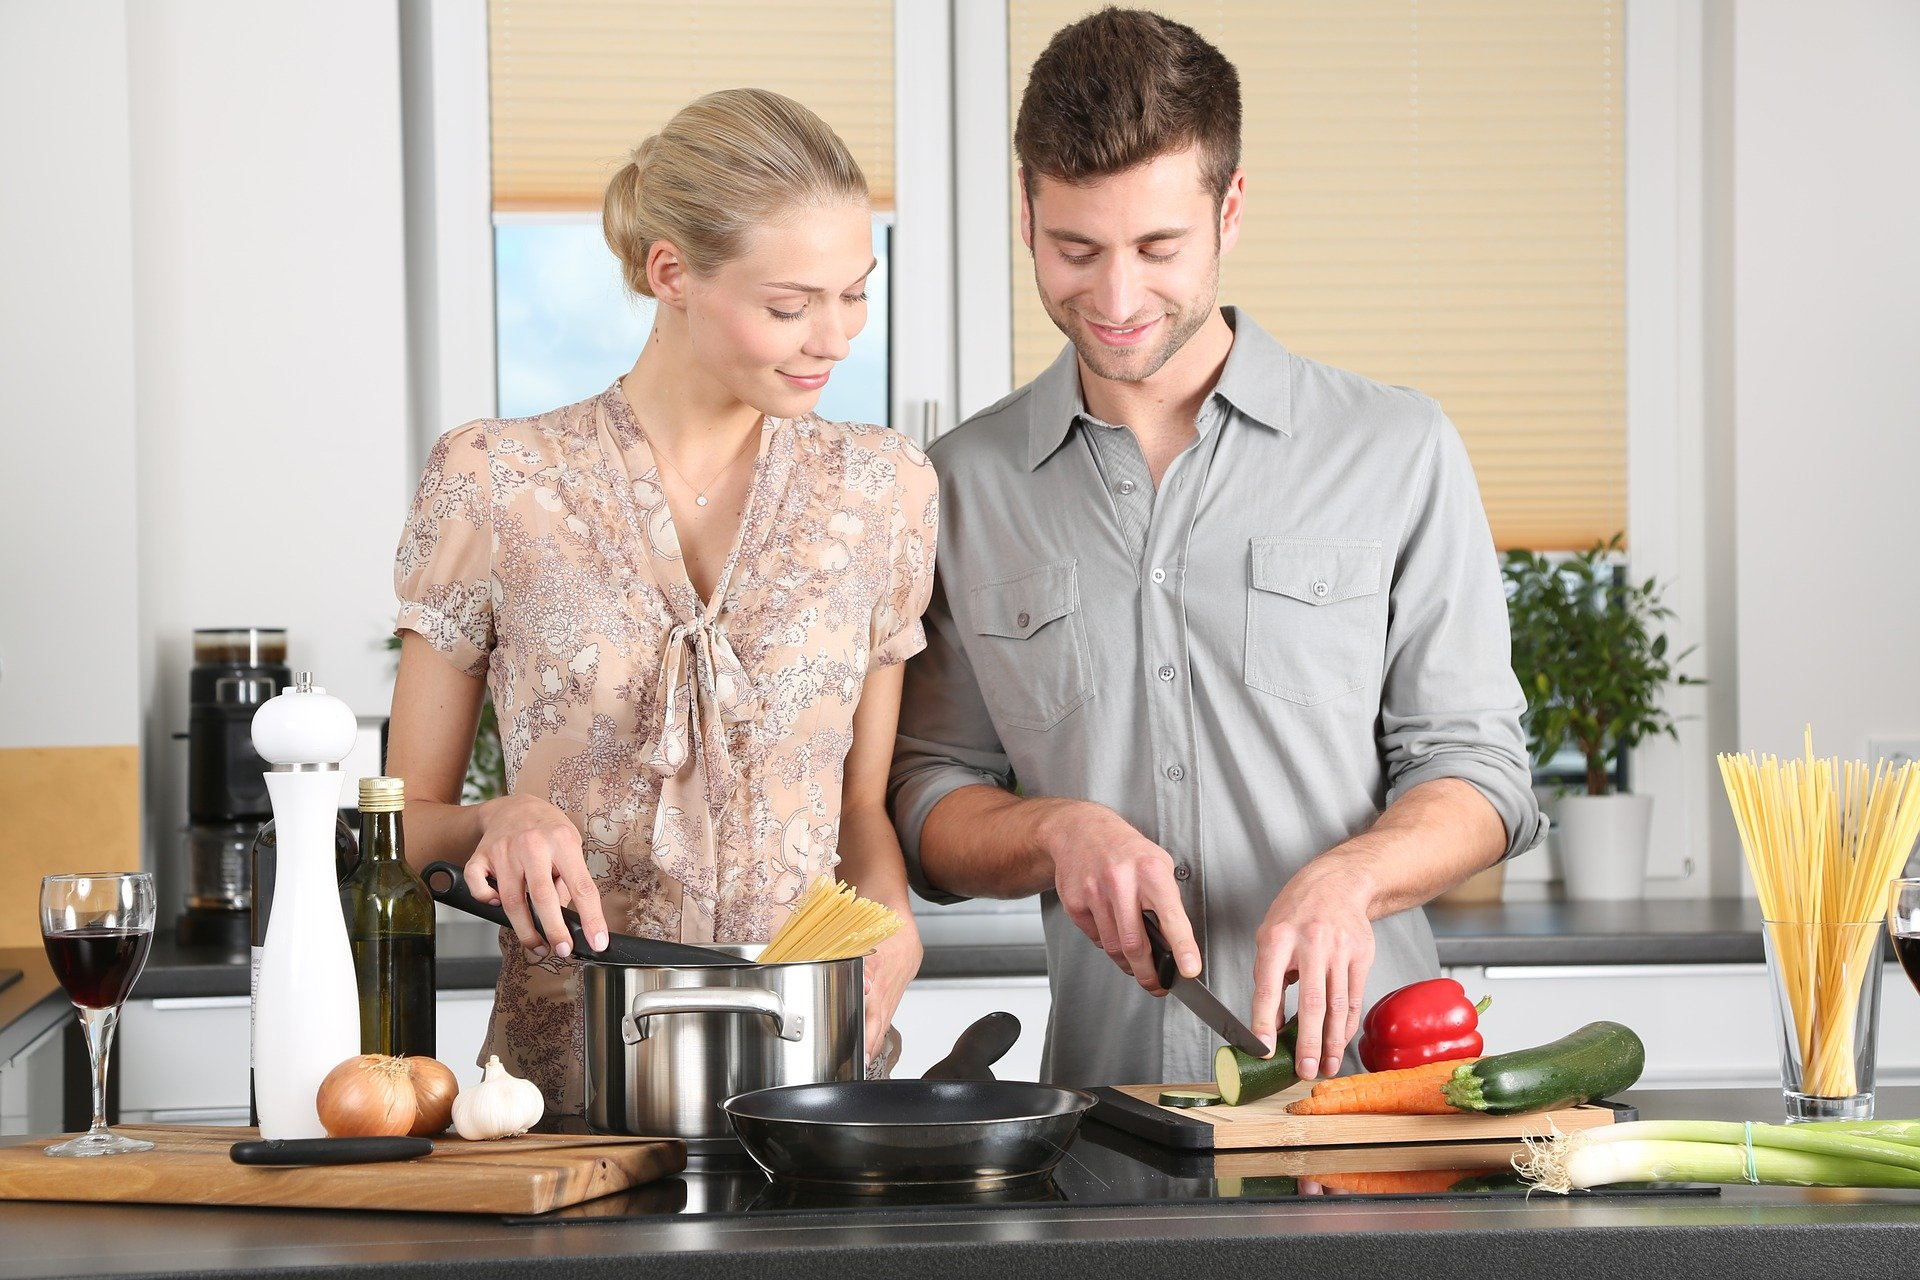 Online cooking classes have become hugely popular in lockdown